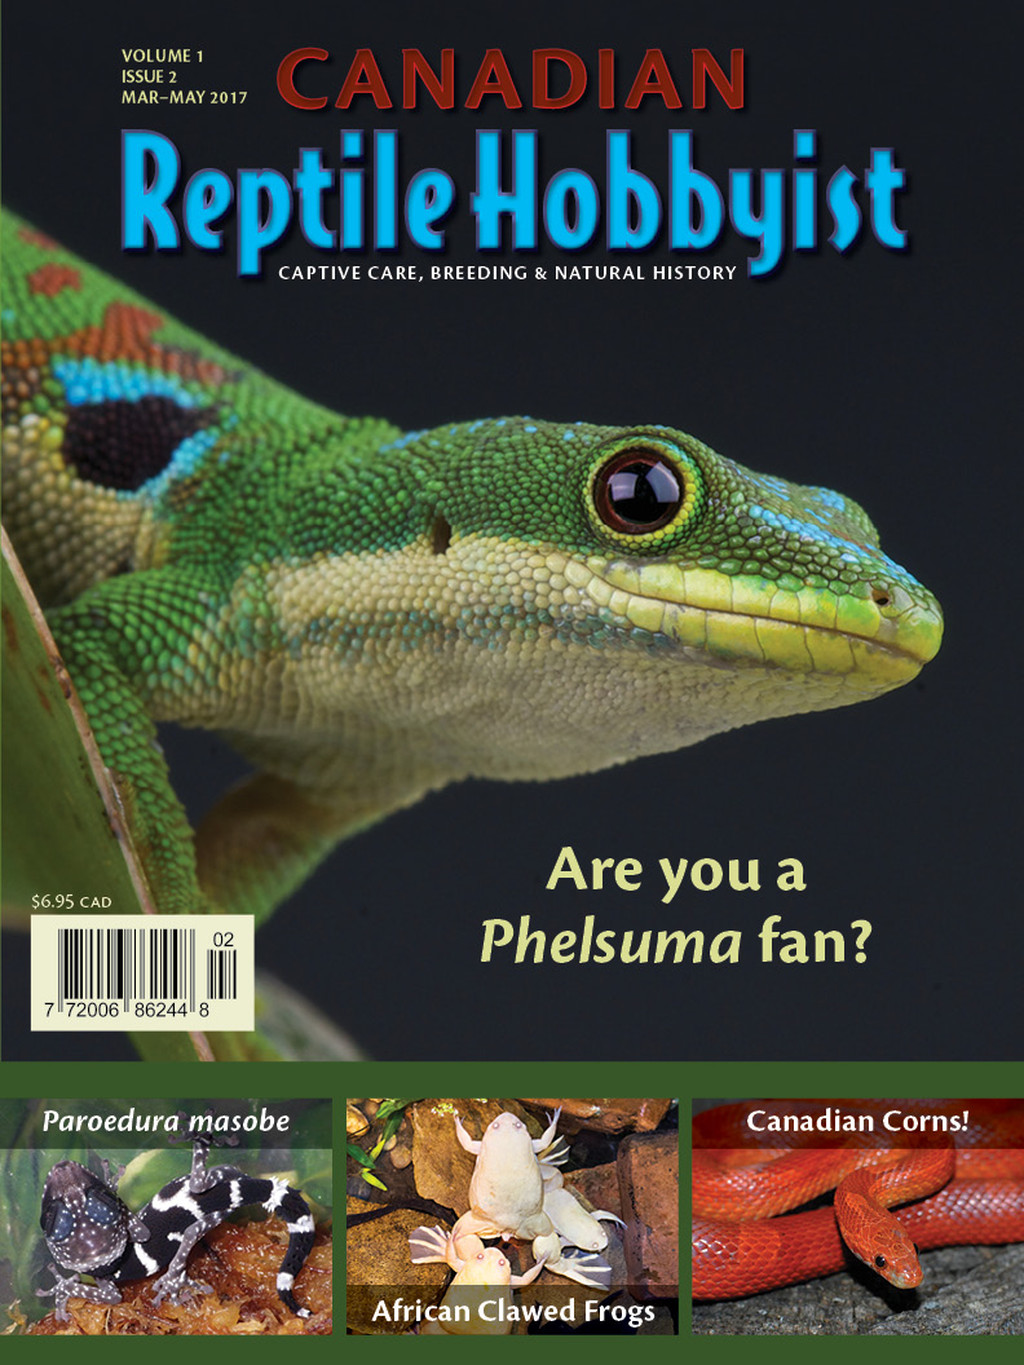 Cover of the September 2016 issue of Canadian Reptile Hobbyist magazine